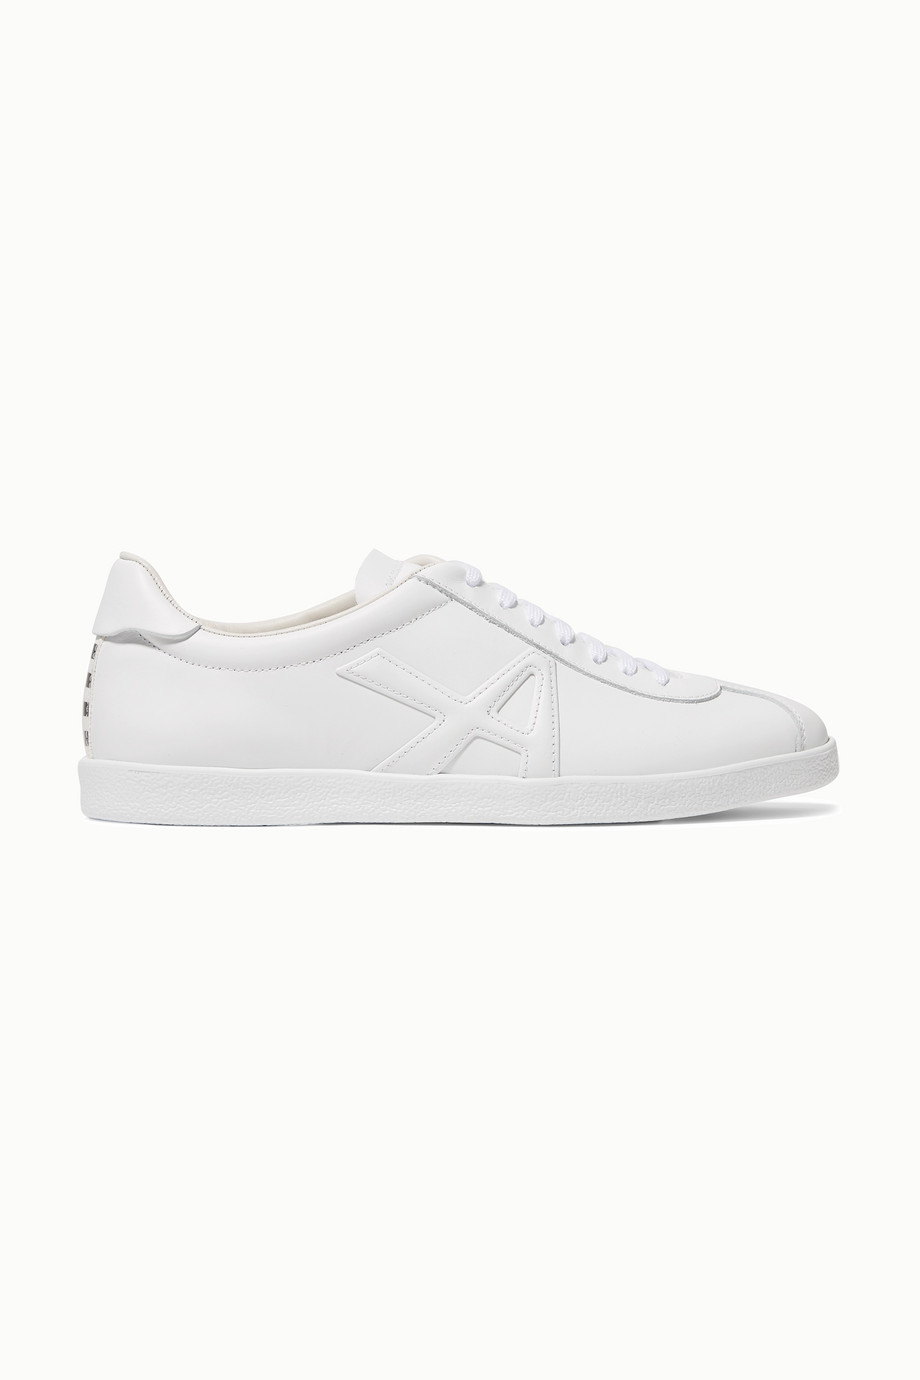 Aquazzura The A leather sneakers